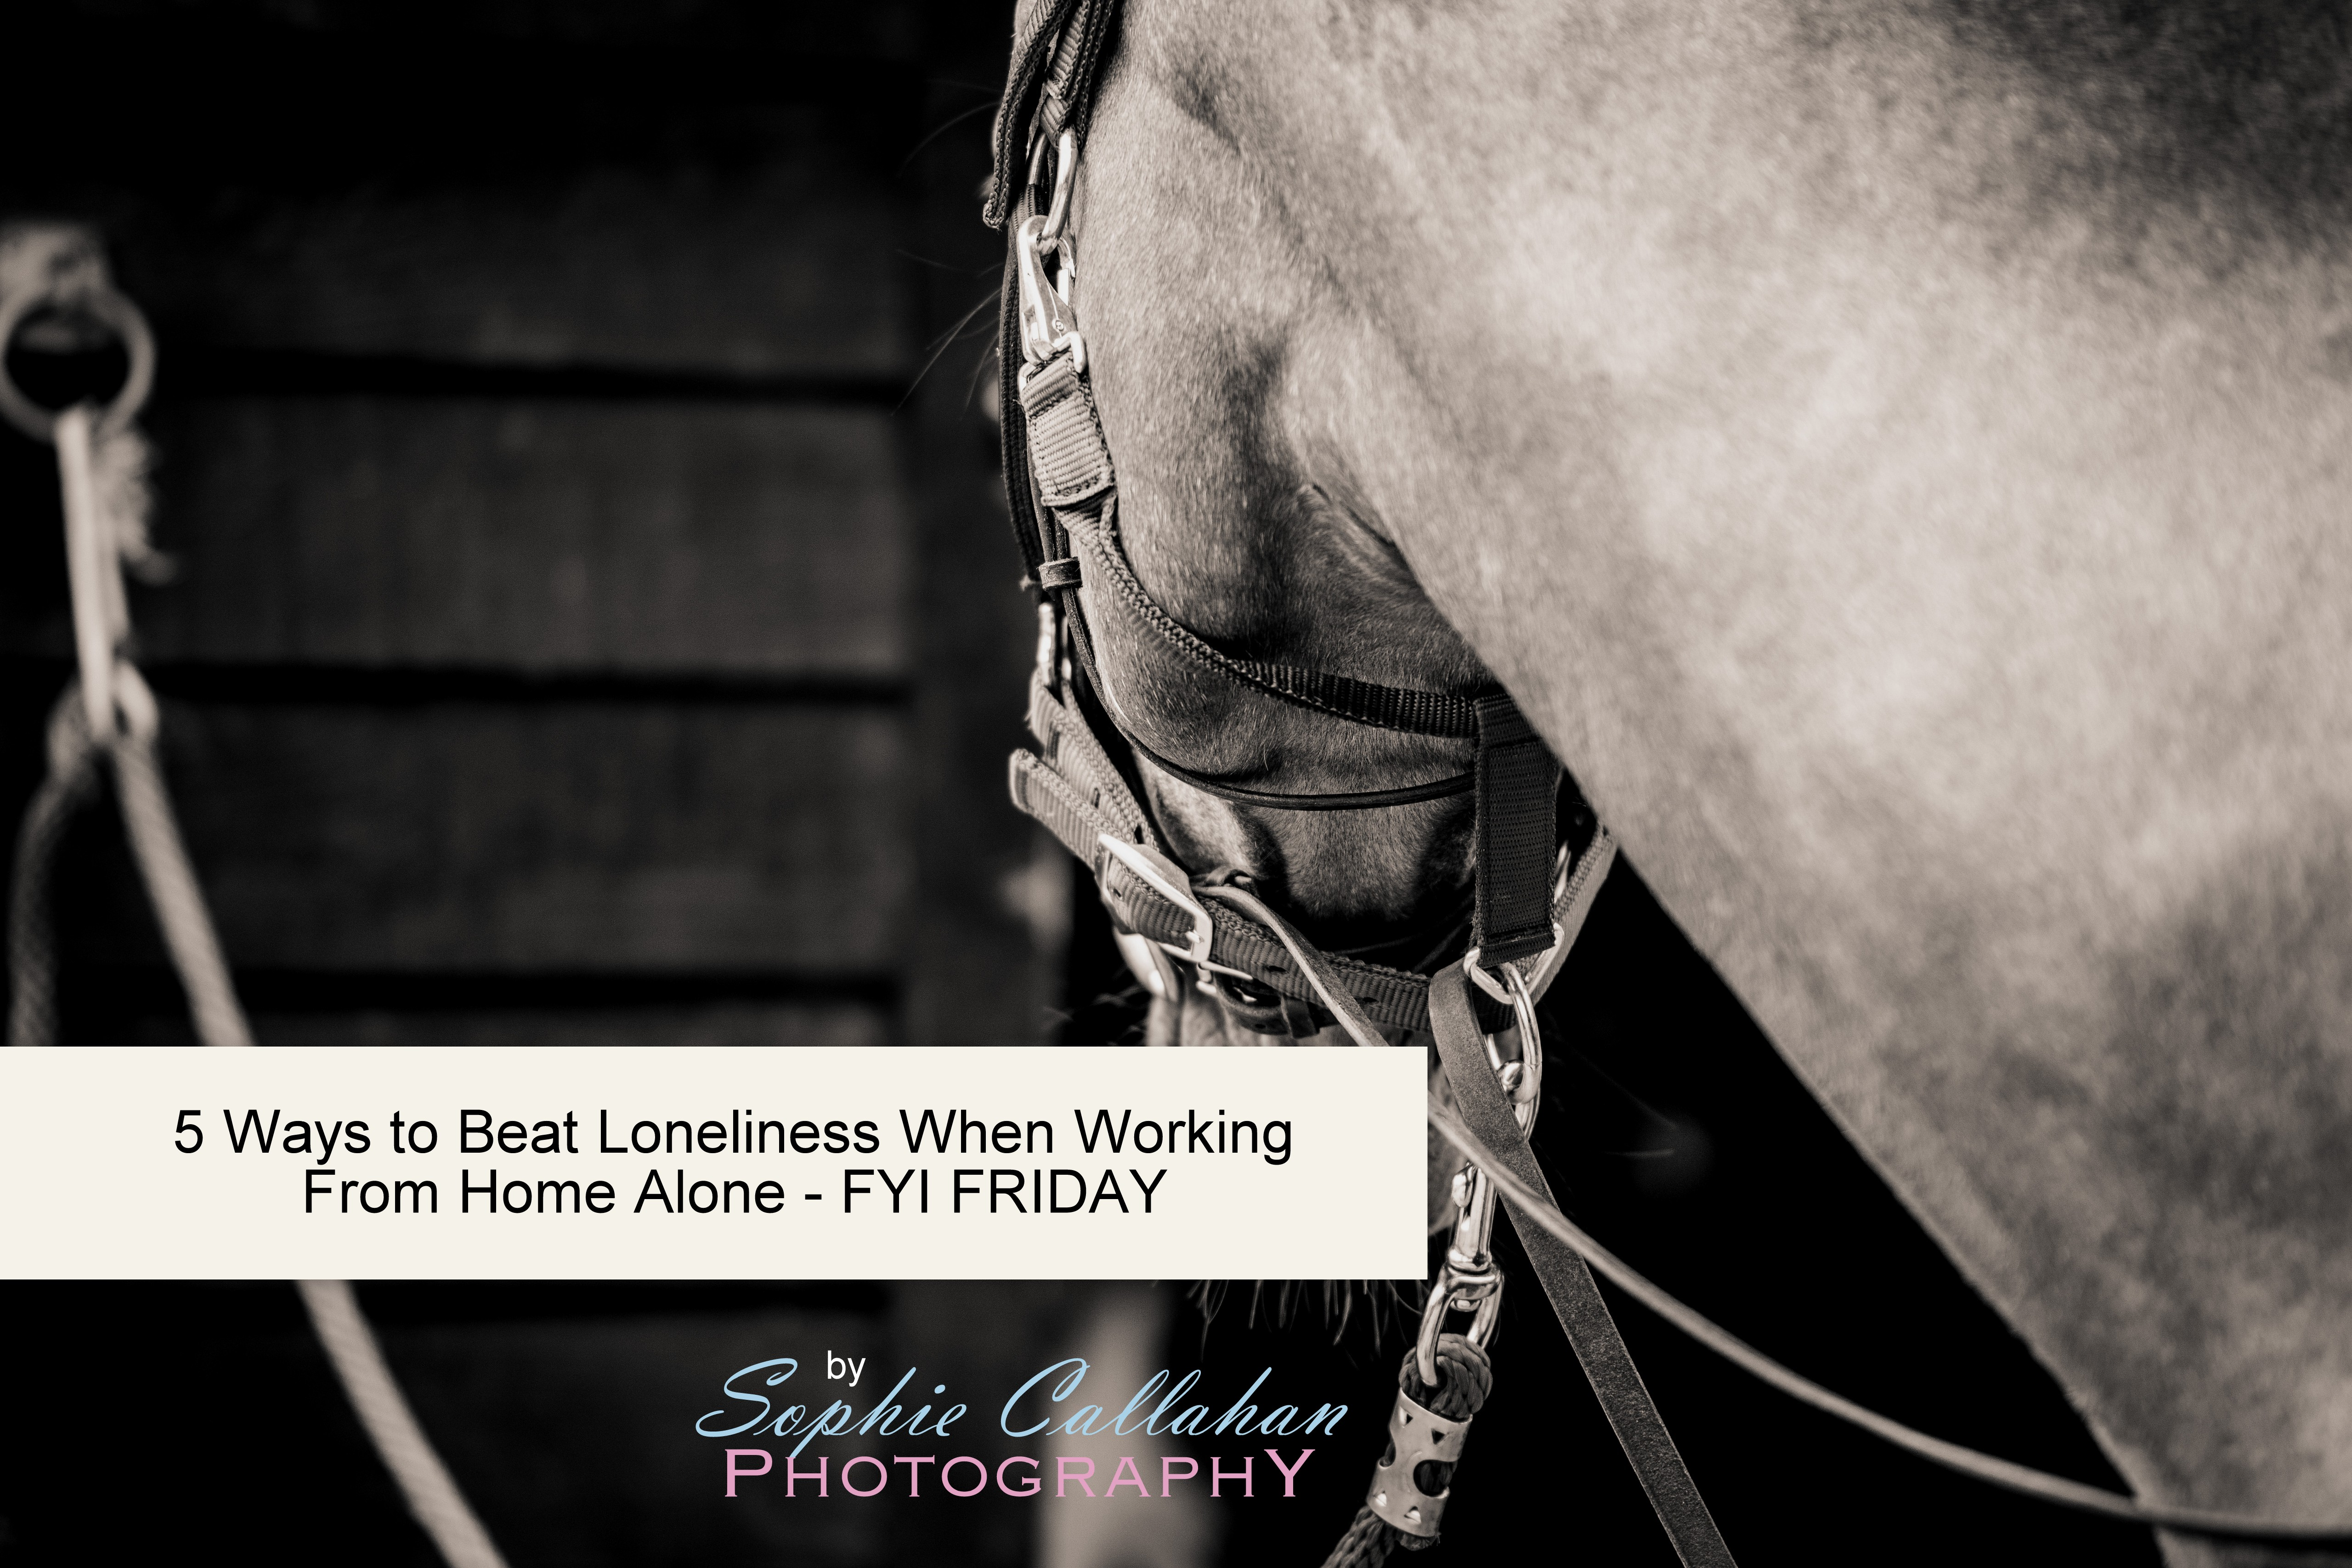 5 Ways to Beat Loneliness When Working From Home Alone, by Specialist UK Equine Photographer I via sophiecallahanblog.com I #equinephotography #photography #equineblogger